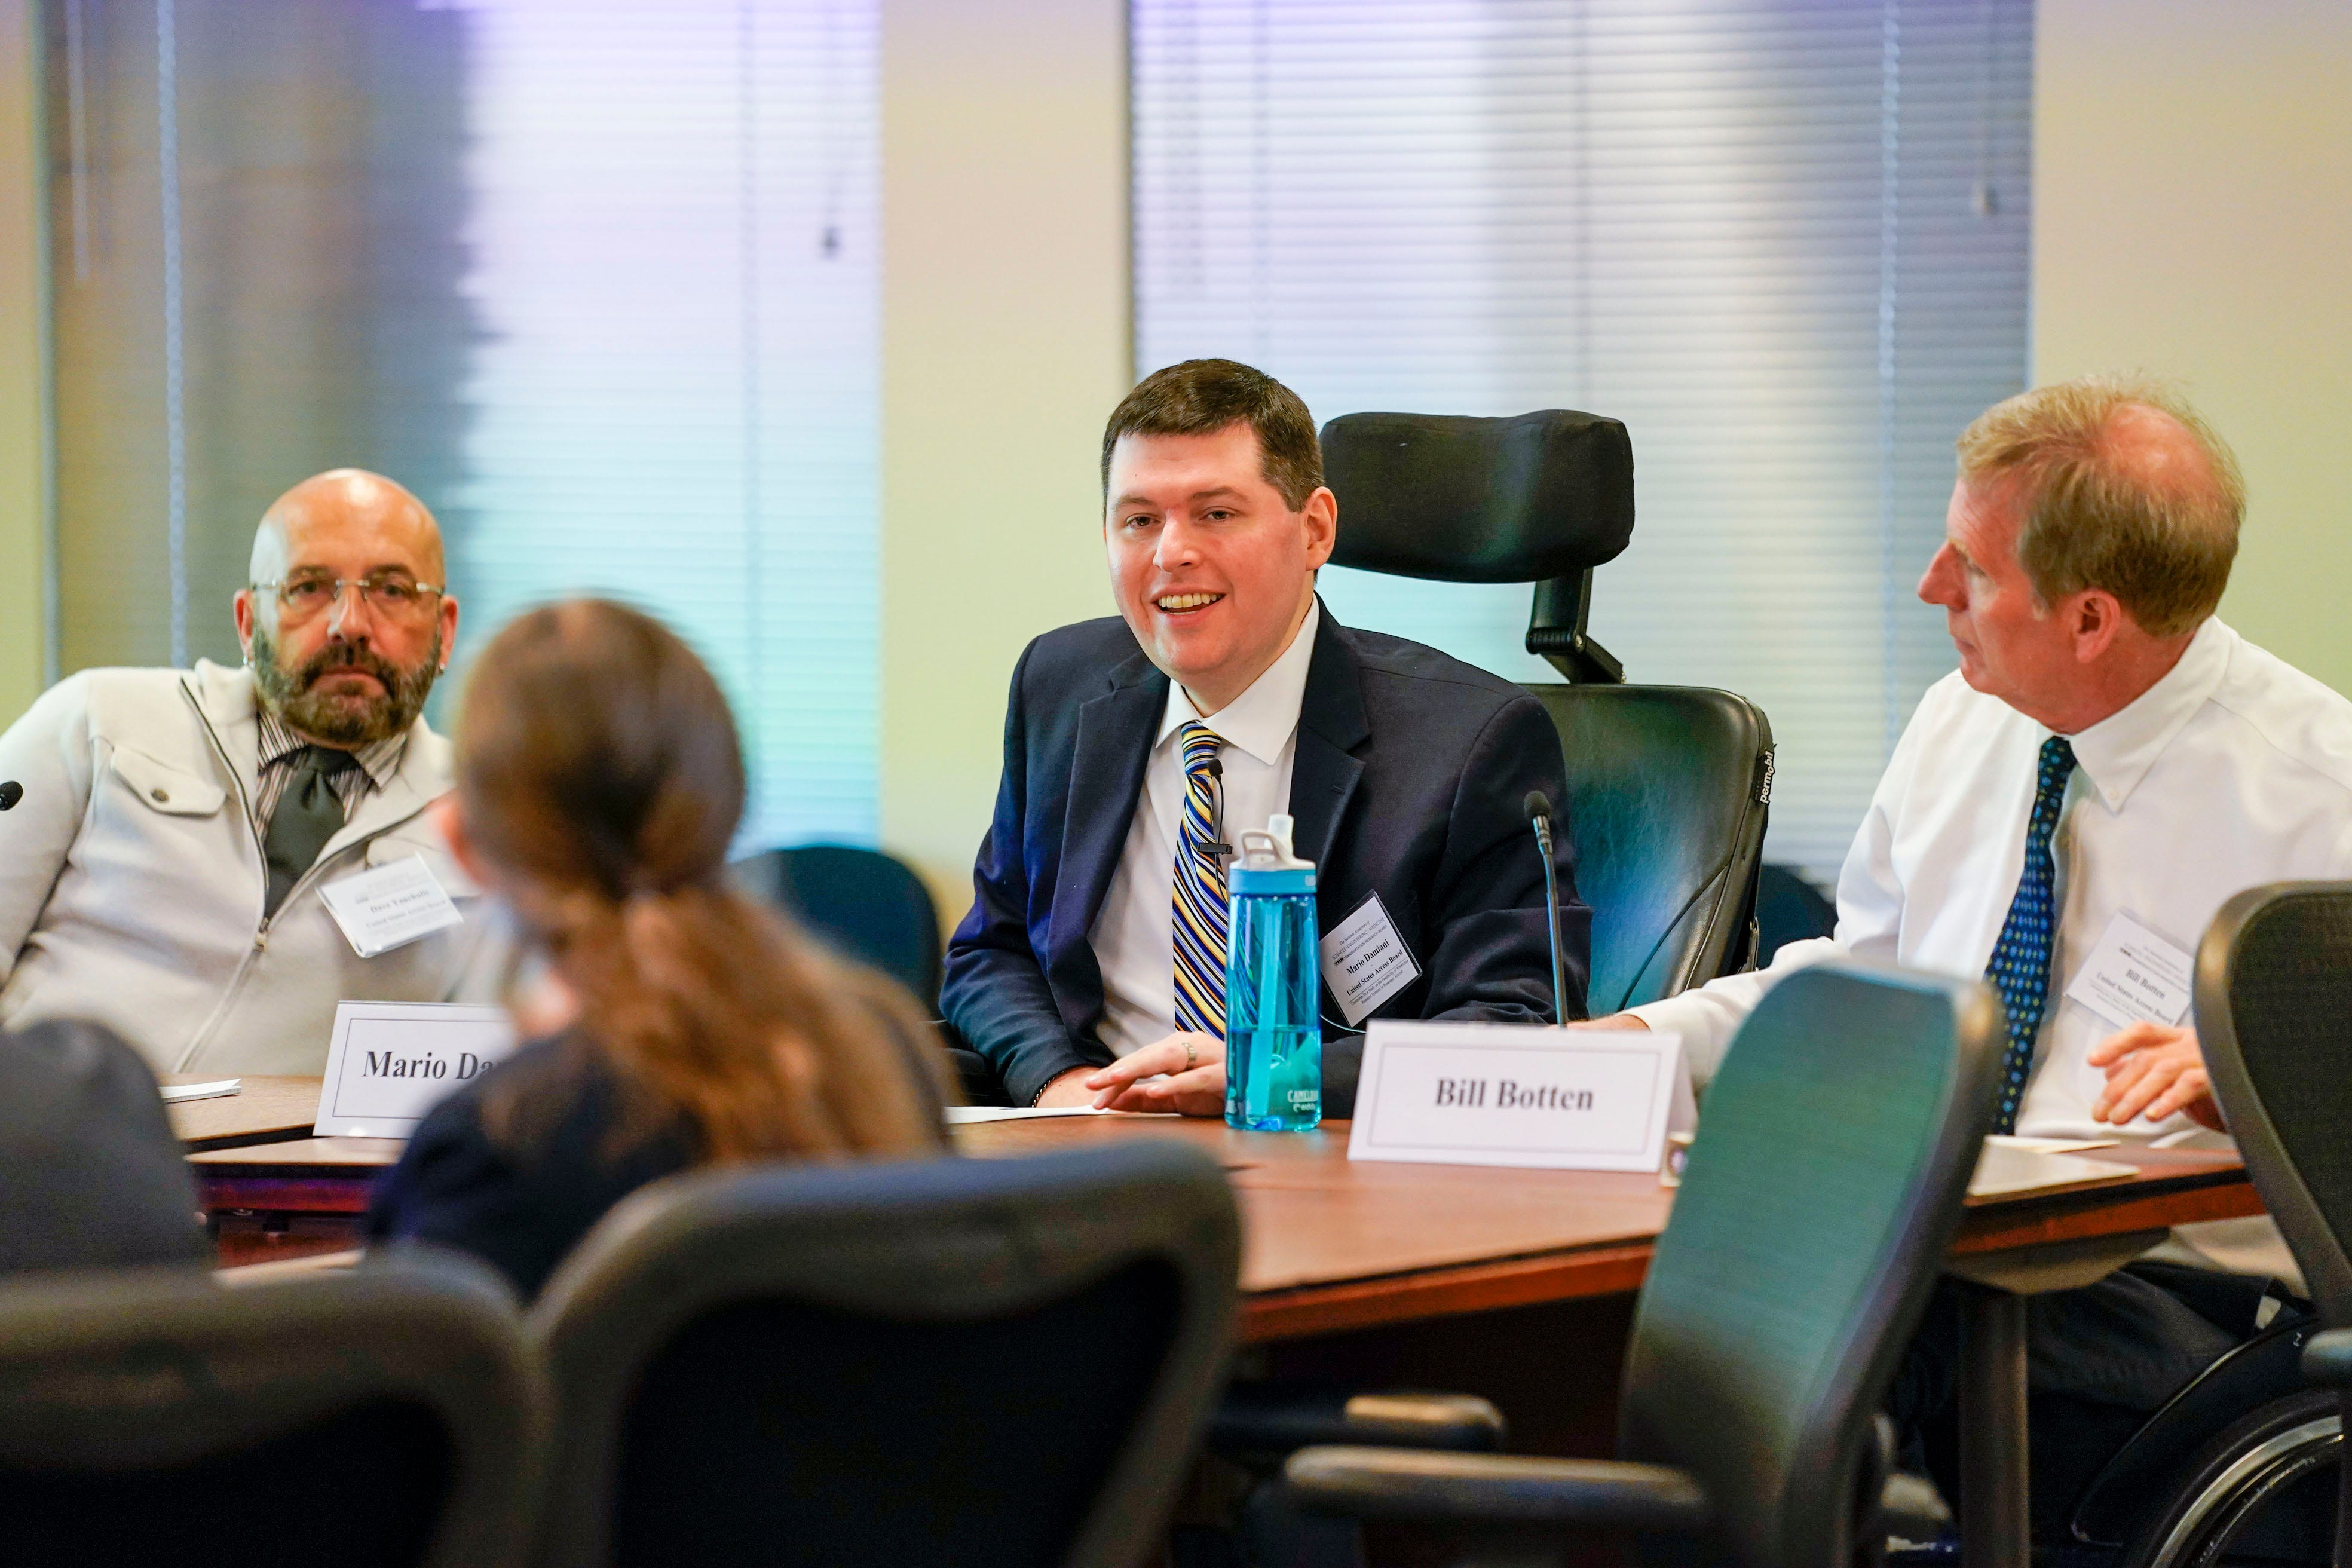 Access Board member Mario Damiani, center, fields questions during the National Transportation Research Board meeting.